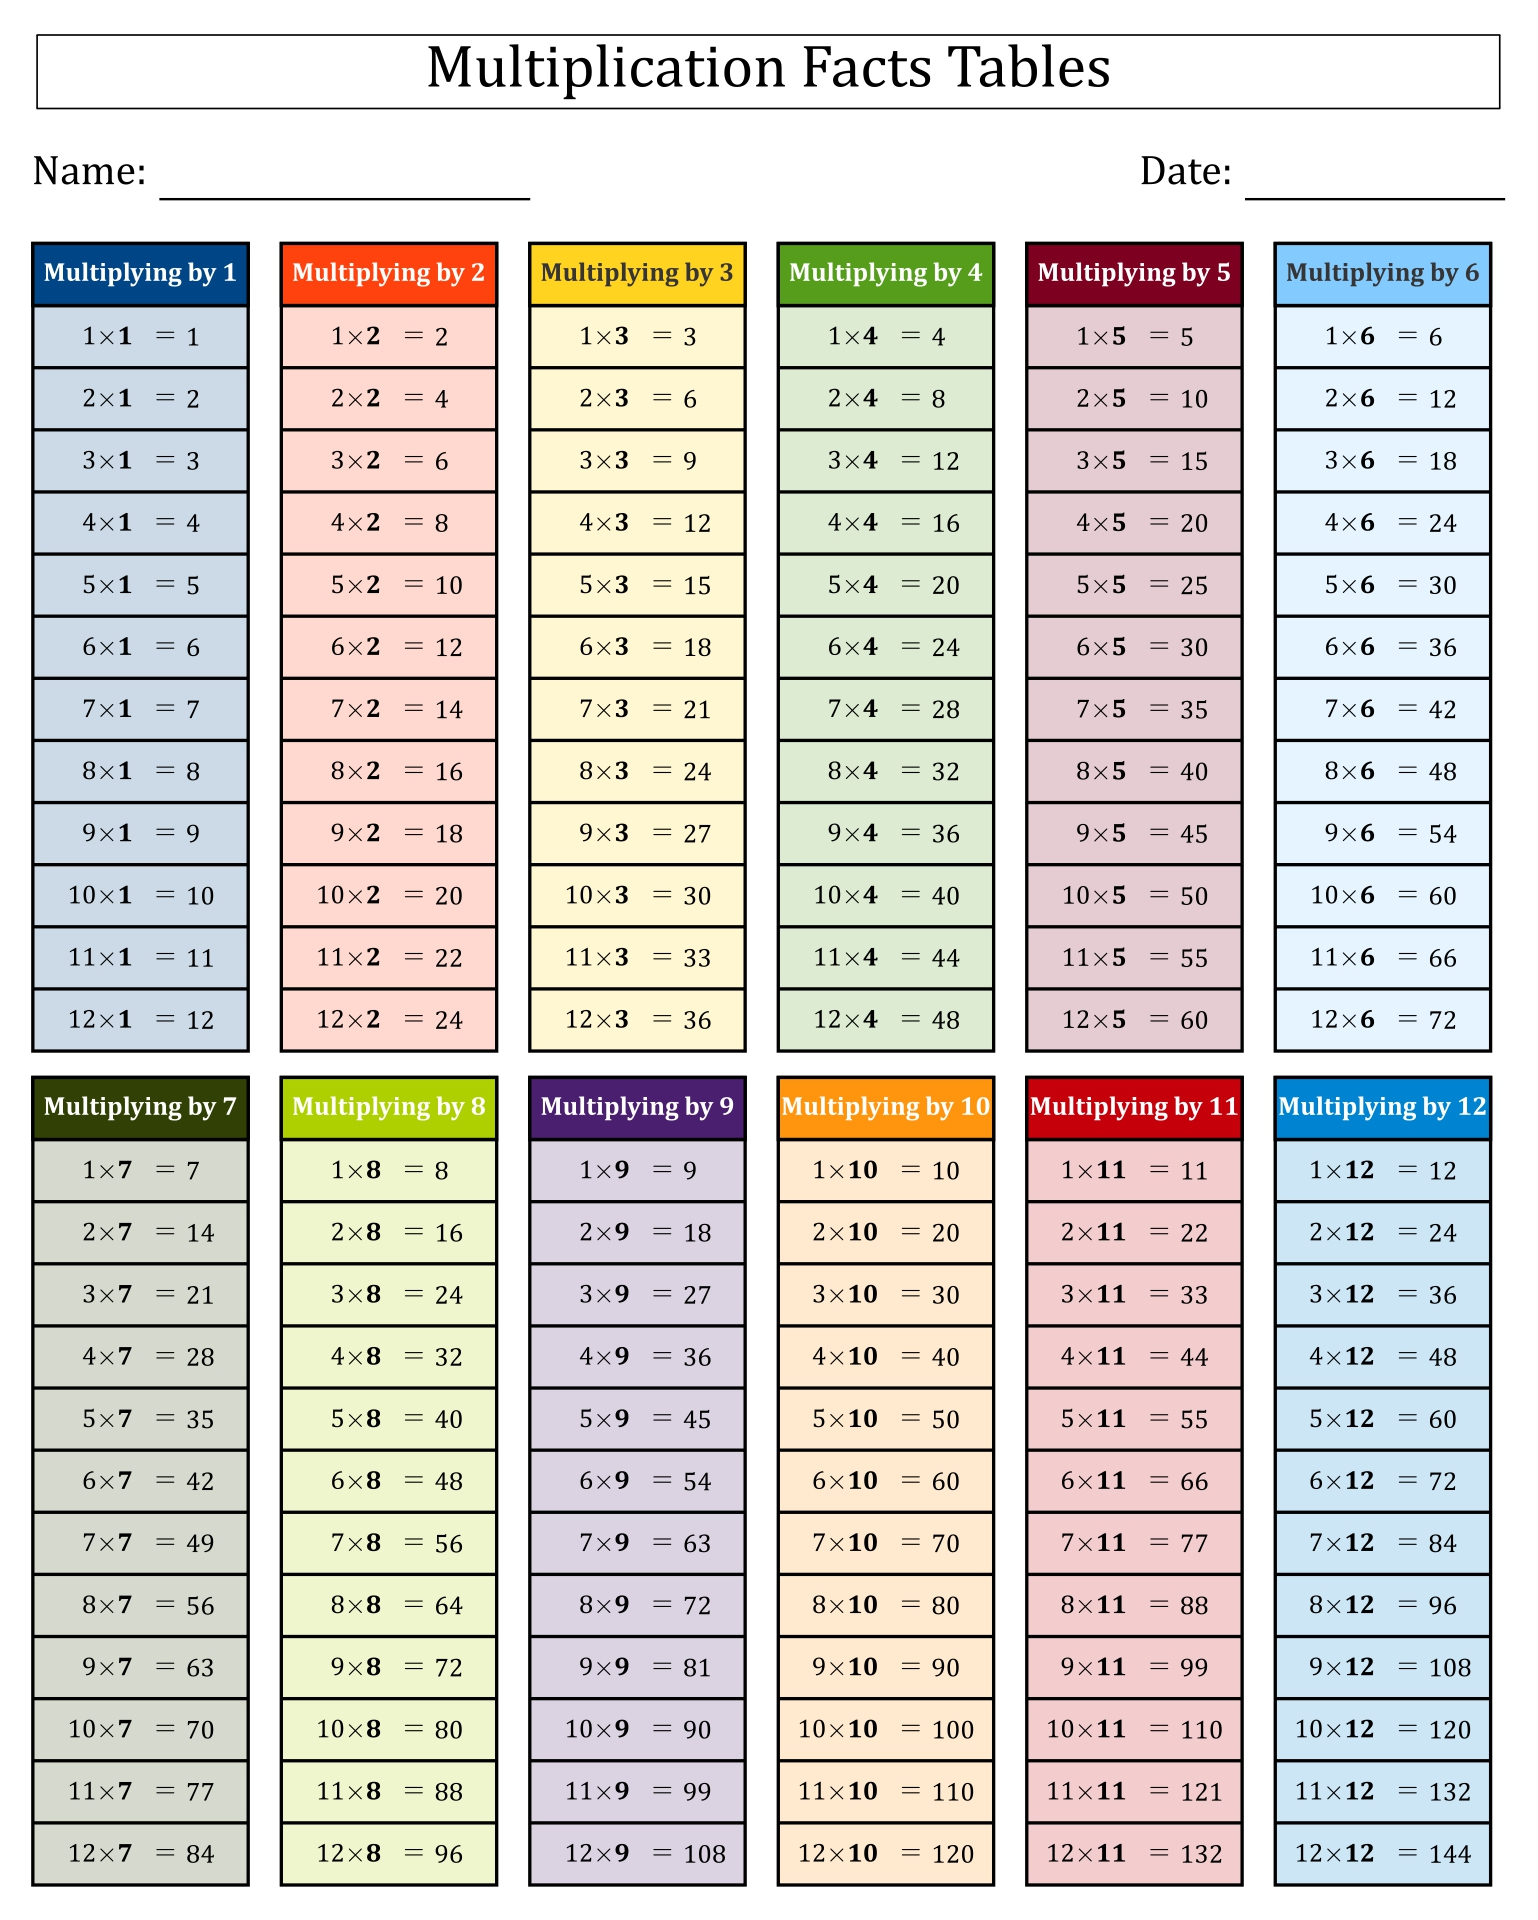 Multiplication Facts Worksheets 112 – Multiplication Tables 1-12 Printable Worksheets